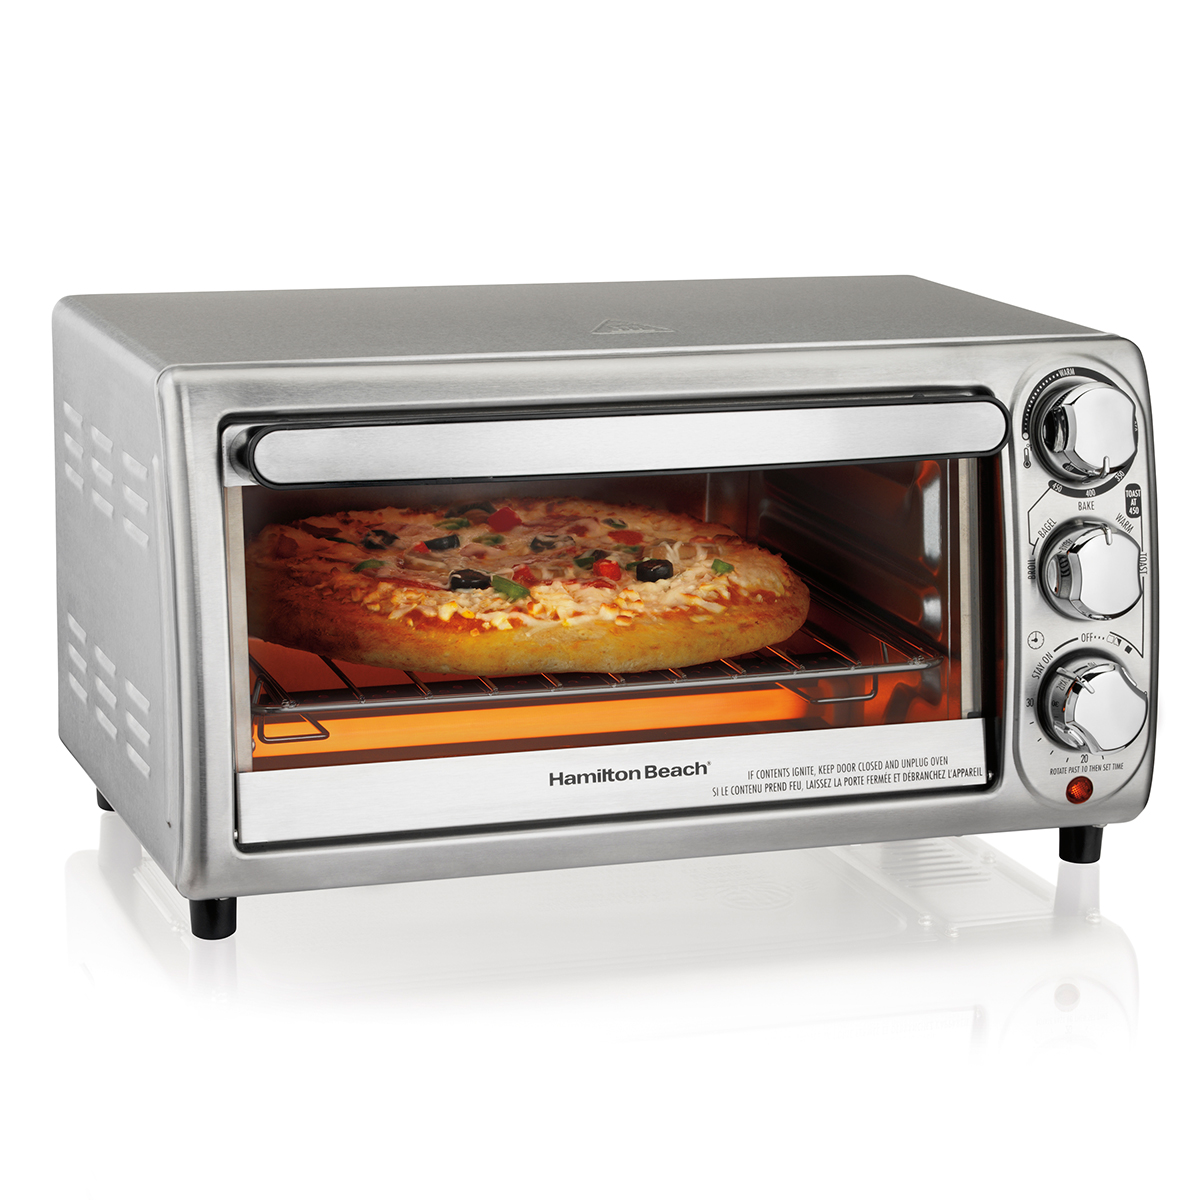 Toaster Oven Parts And Accessories ~ Hamilton beach toaster oven